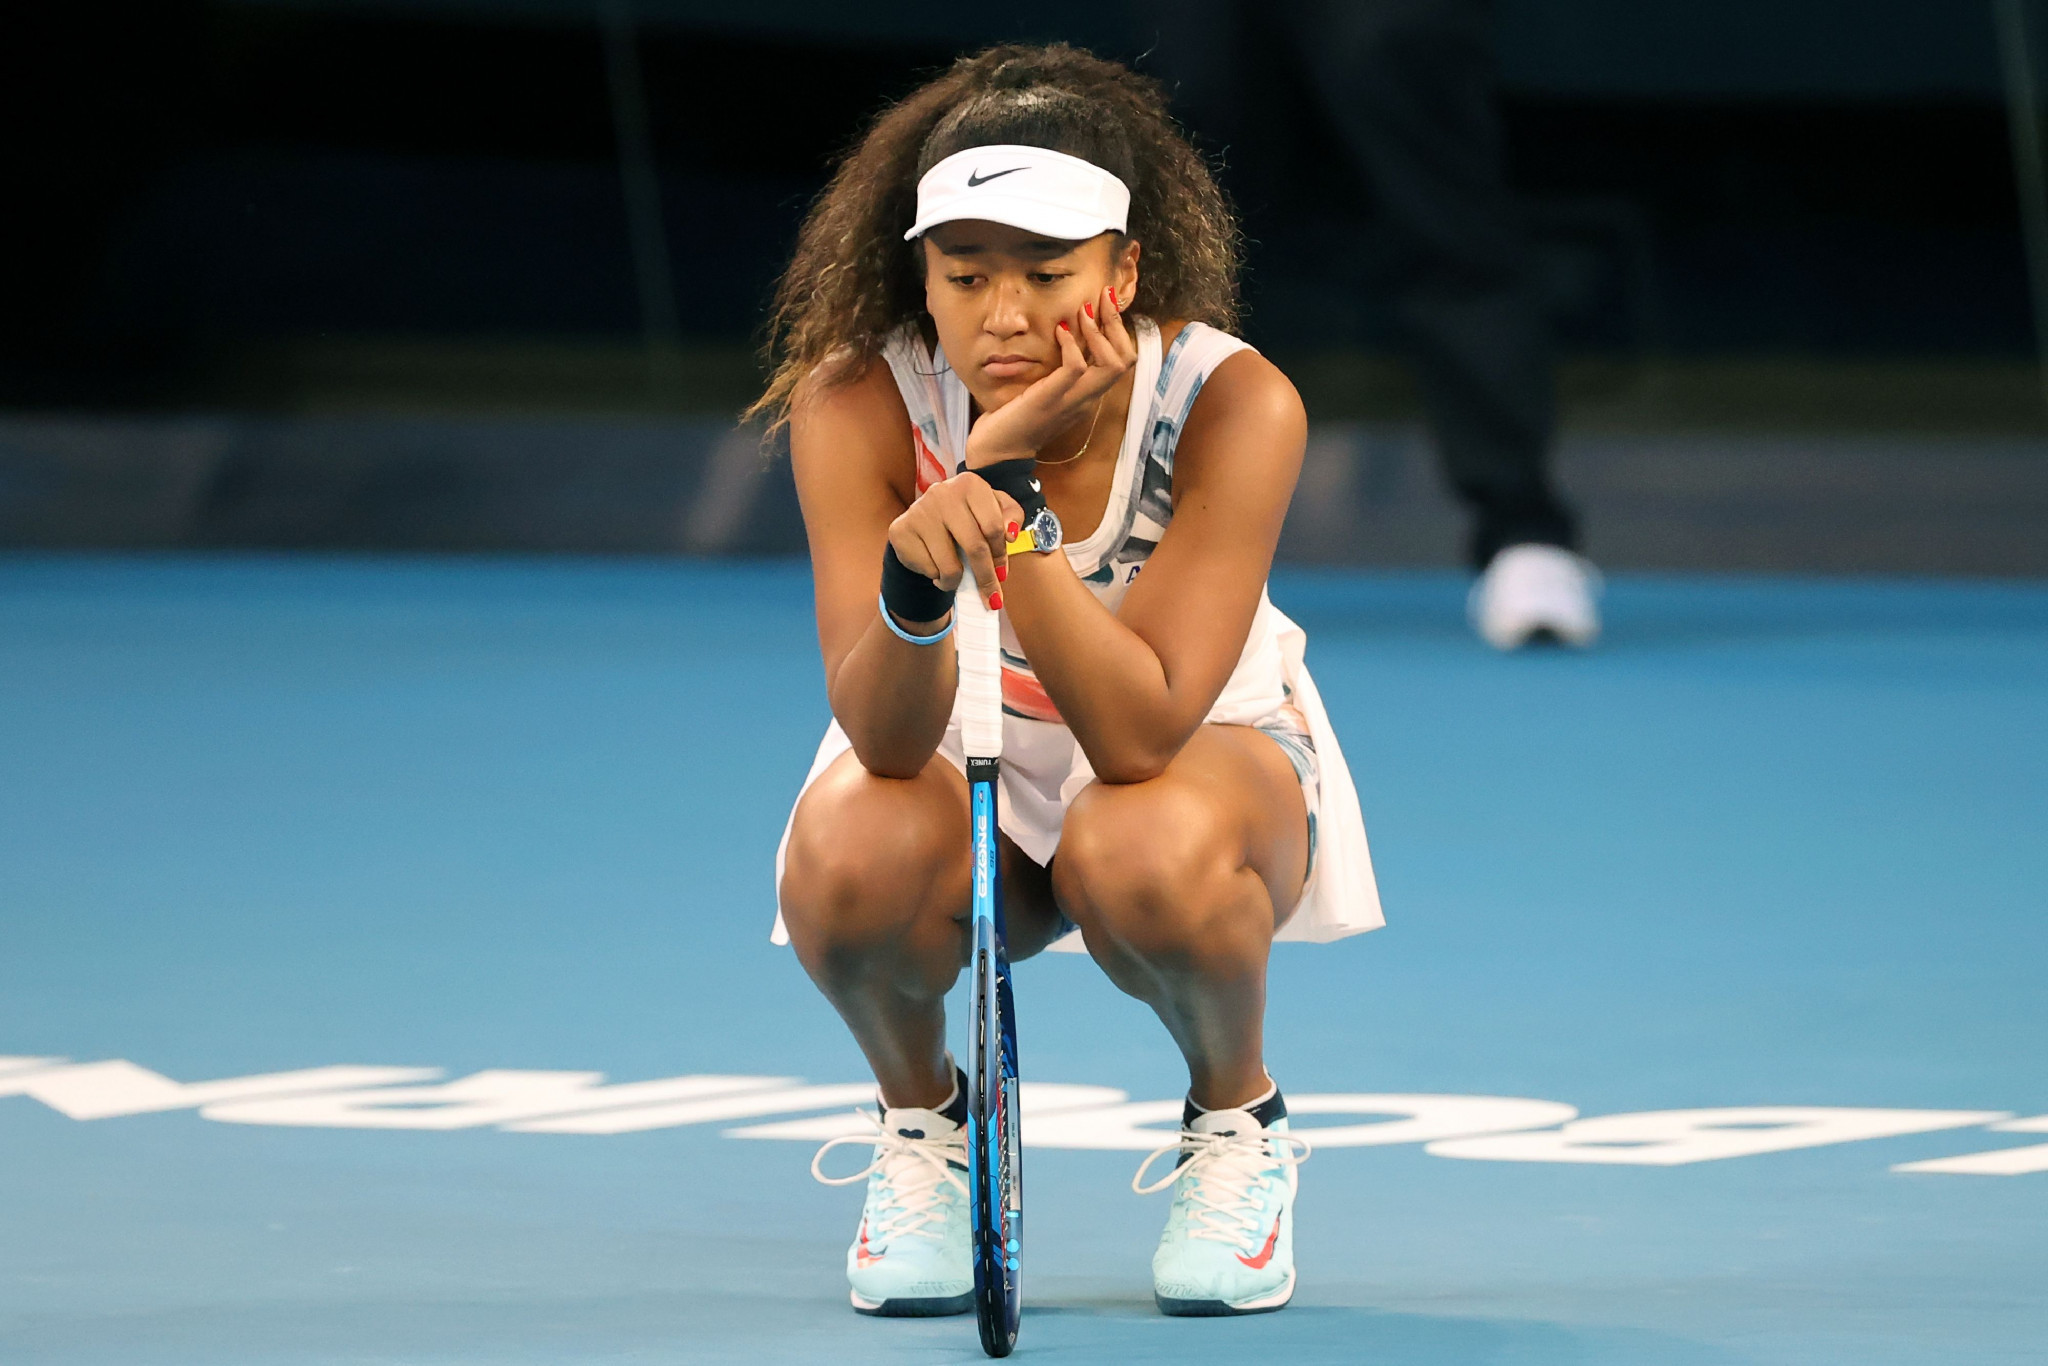 Eventful day at Australian Open sees defending champion Osaka crash out